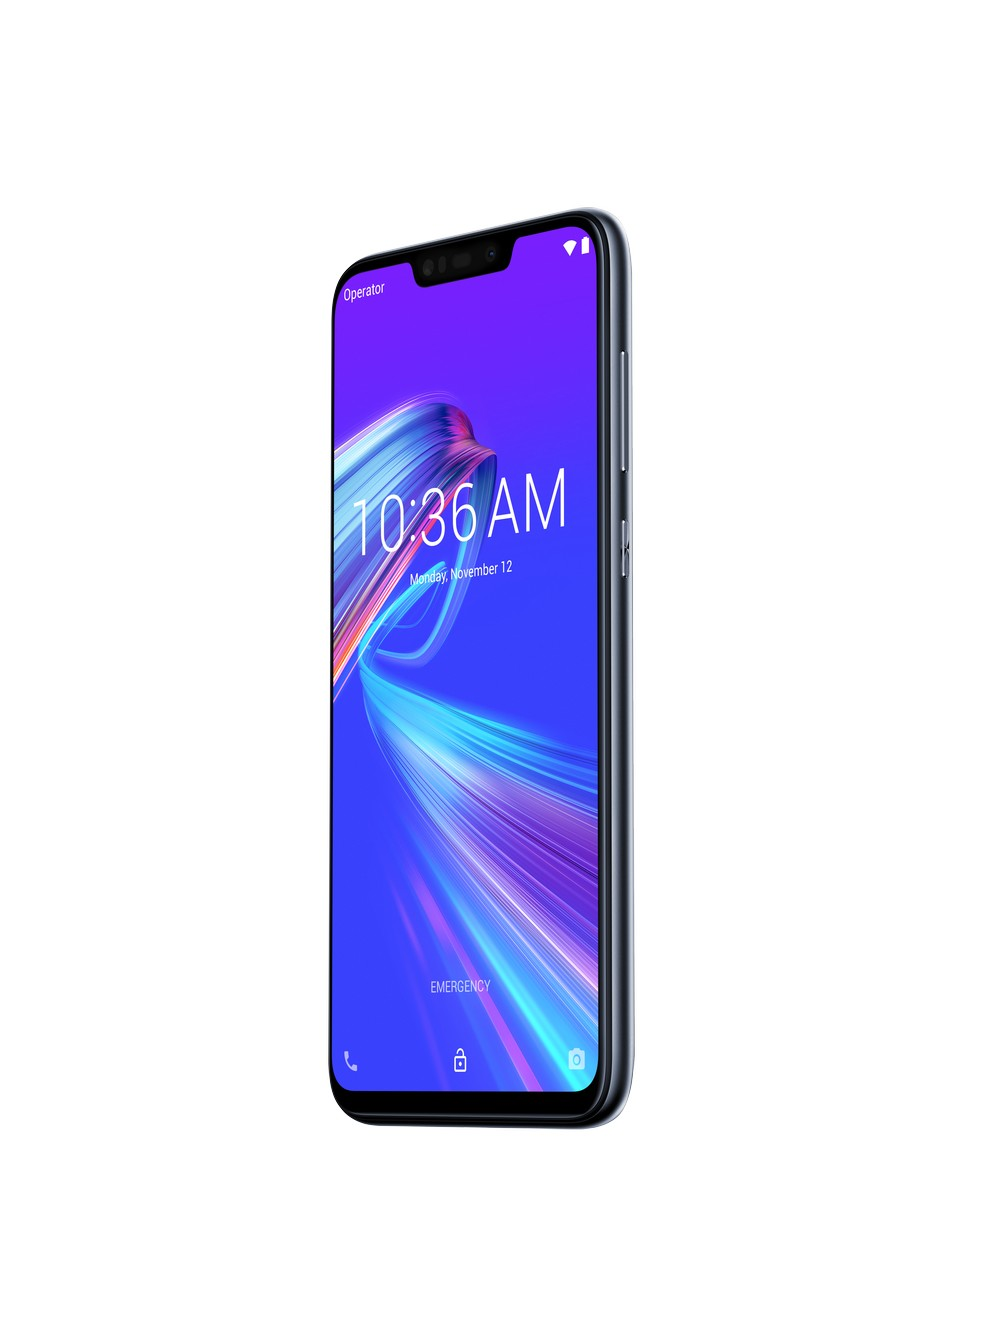 Asus Zenfone Max Pro M2 & Max M2 go official in Russia 4